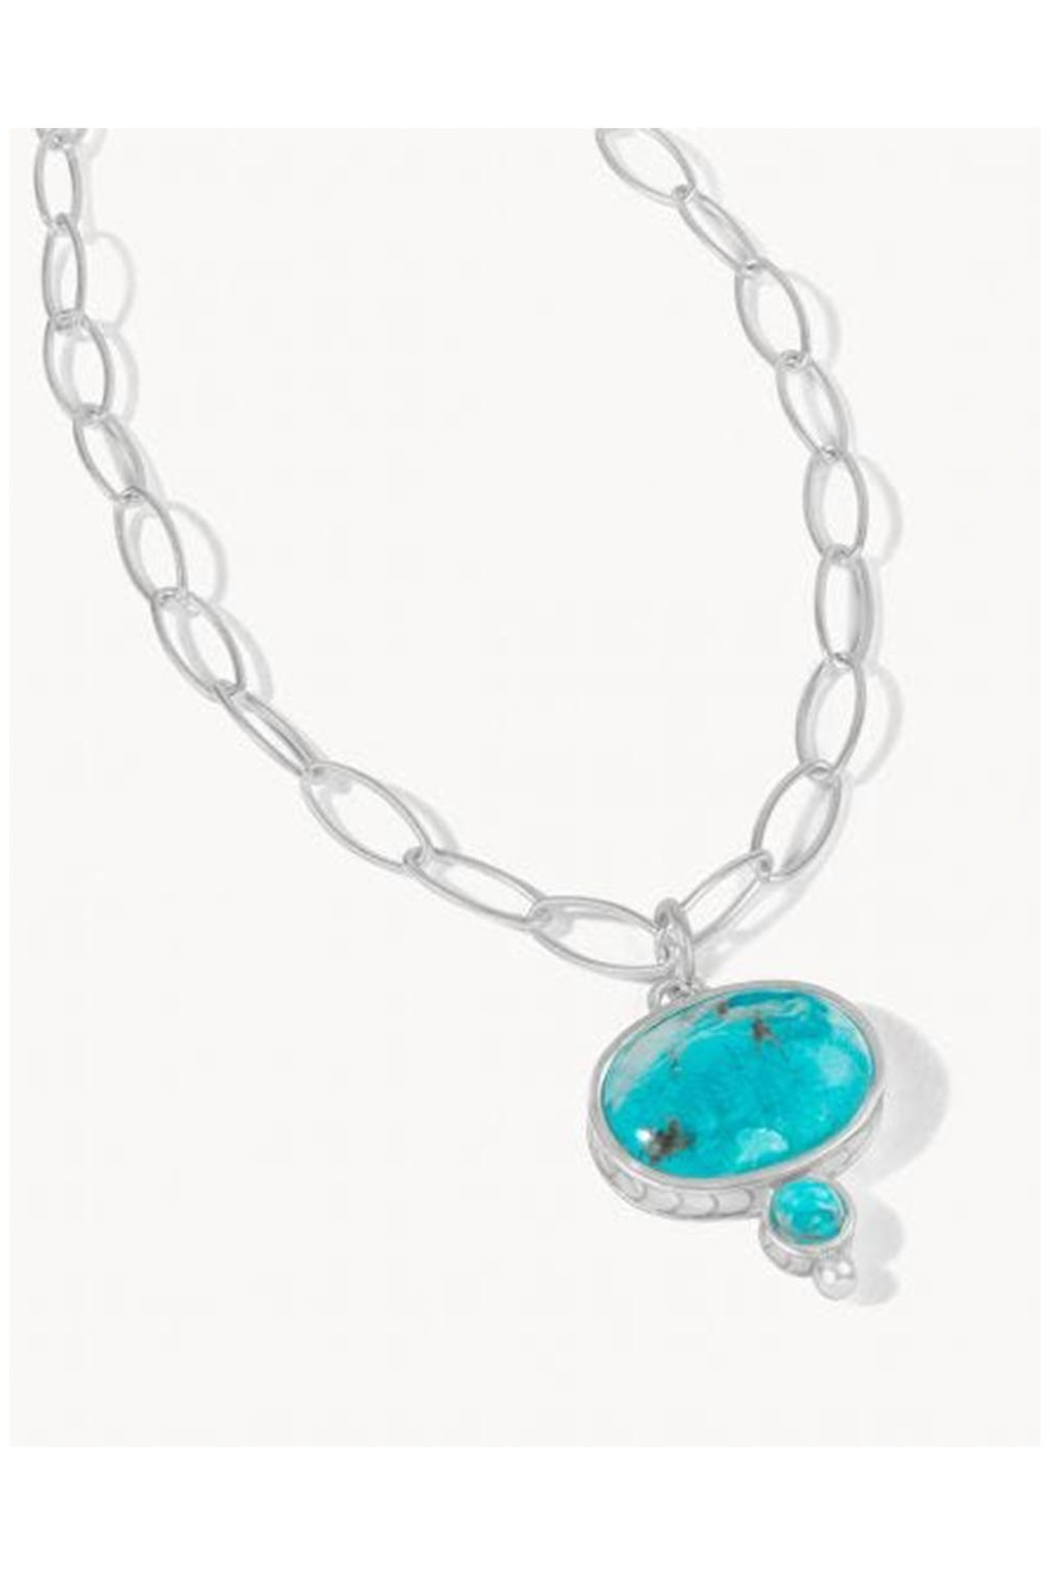 Spartina 449 Naia Chunky Turquoise SIL Necklace 18' - Main Image